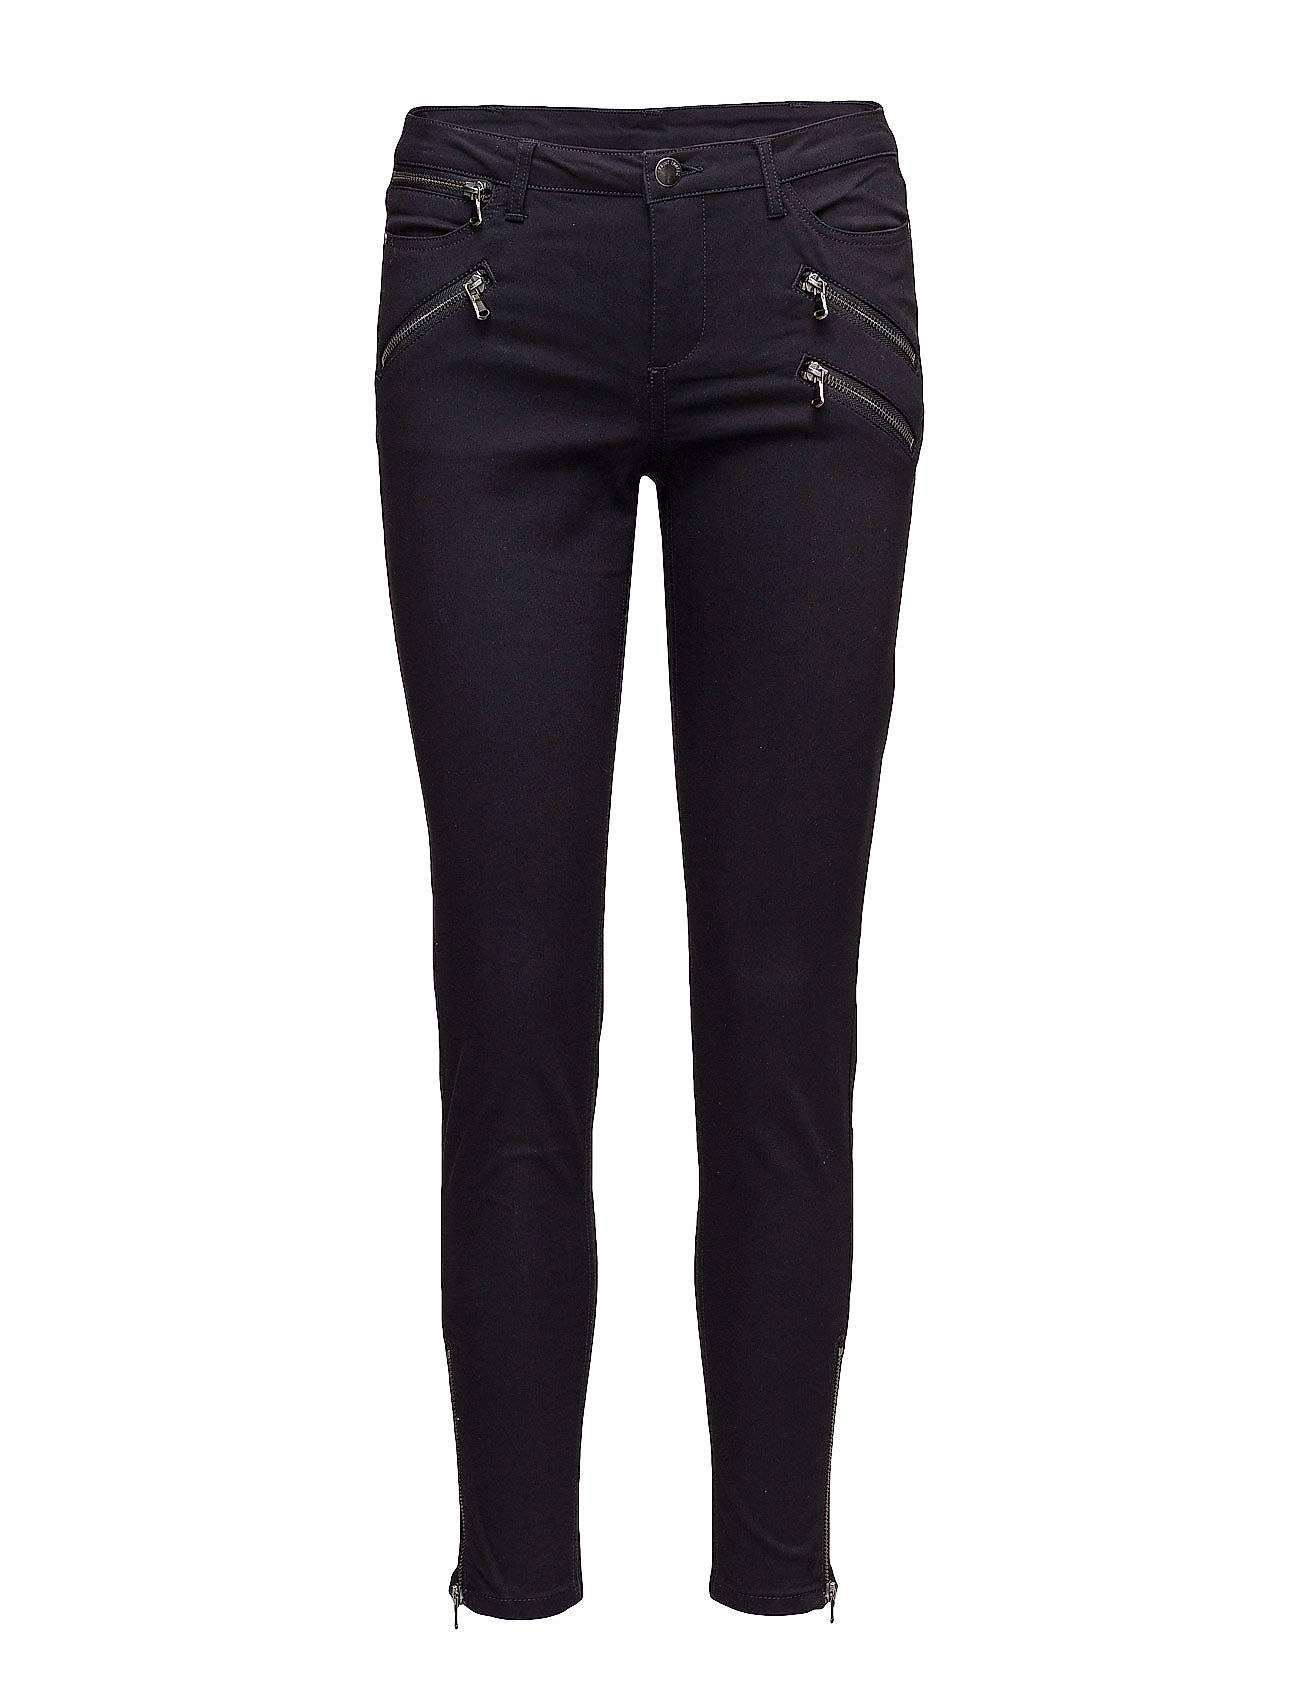 Saint Tropez Stretch Pants With Zippers